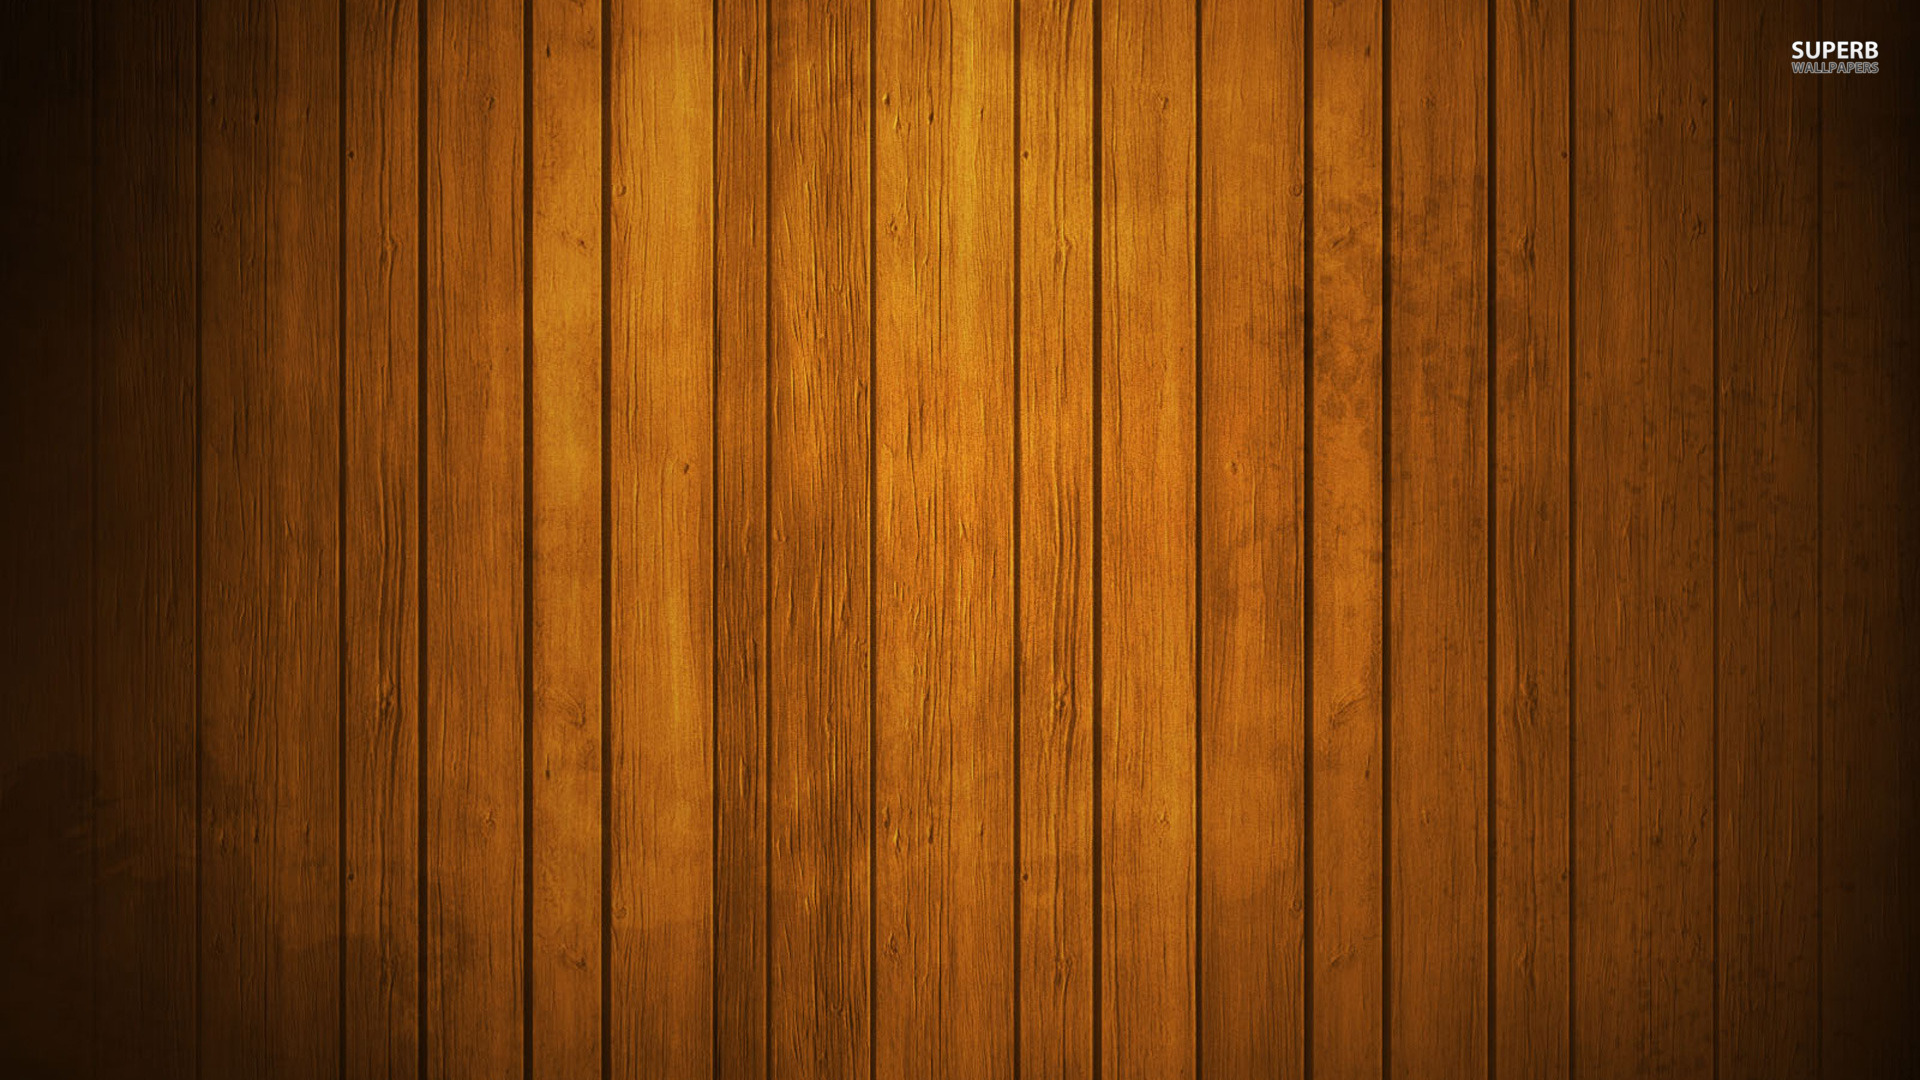 Wood-Floor-Pattern-Background-Paper-Backgrounds-Download-High-HD-wallpaper-wpc90010762